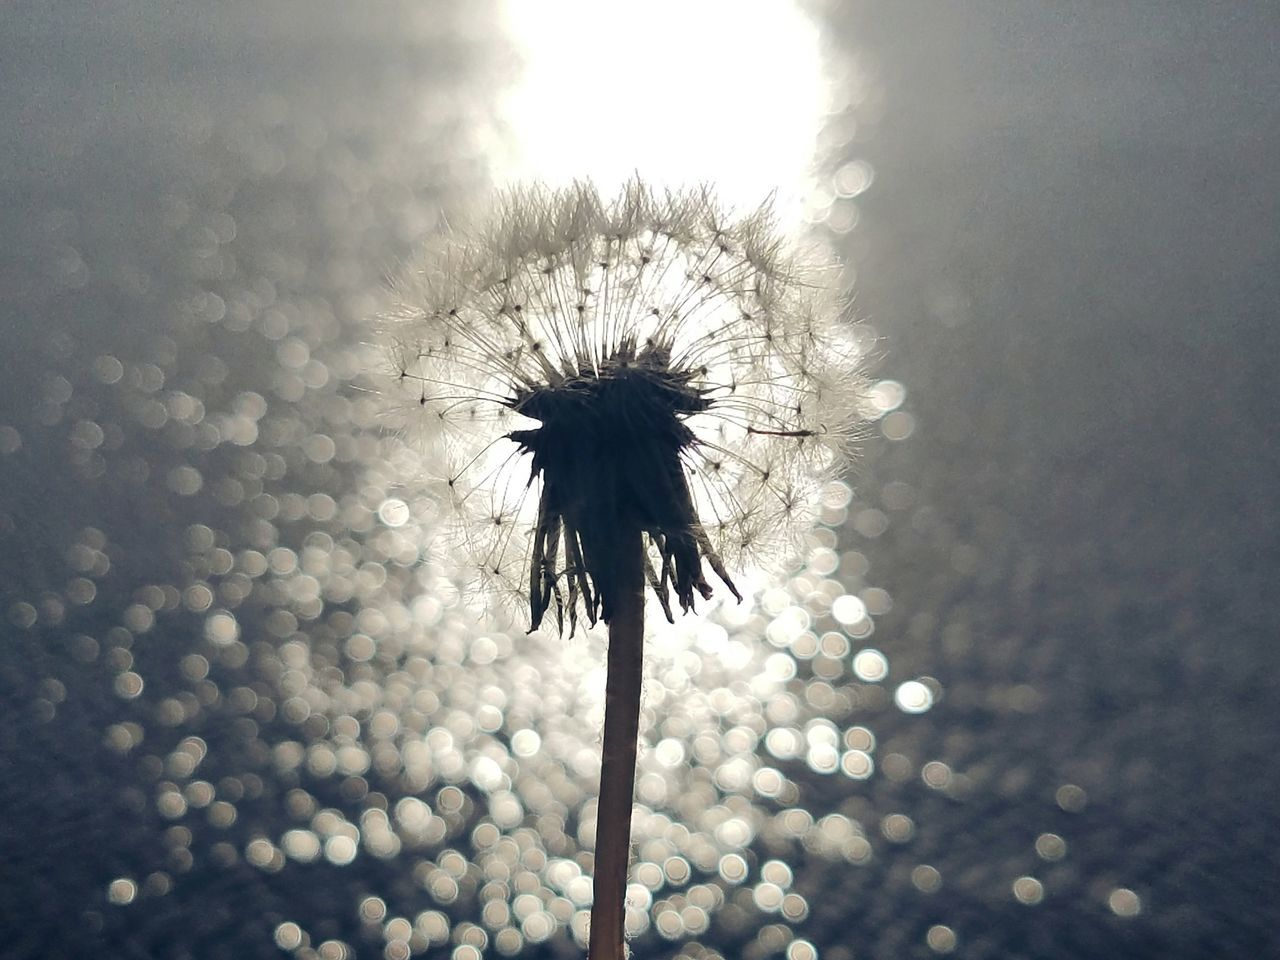 Hello No People Nature Outdoors Bokeh Silhouette Dandelion Close-up Samsung Galaxy S7 Edge Plant Android Photography EyeEm Best Shots EyeEm Fragility Tranquility